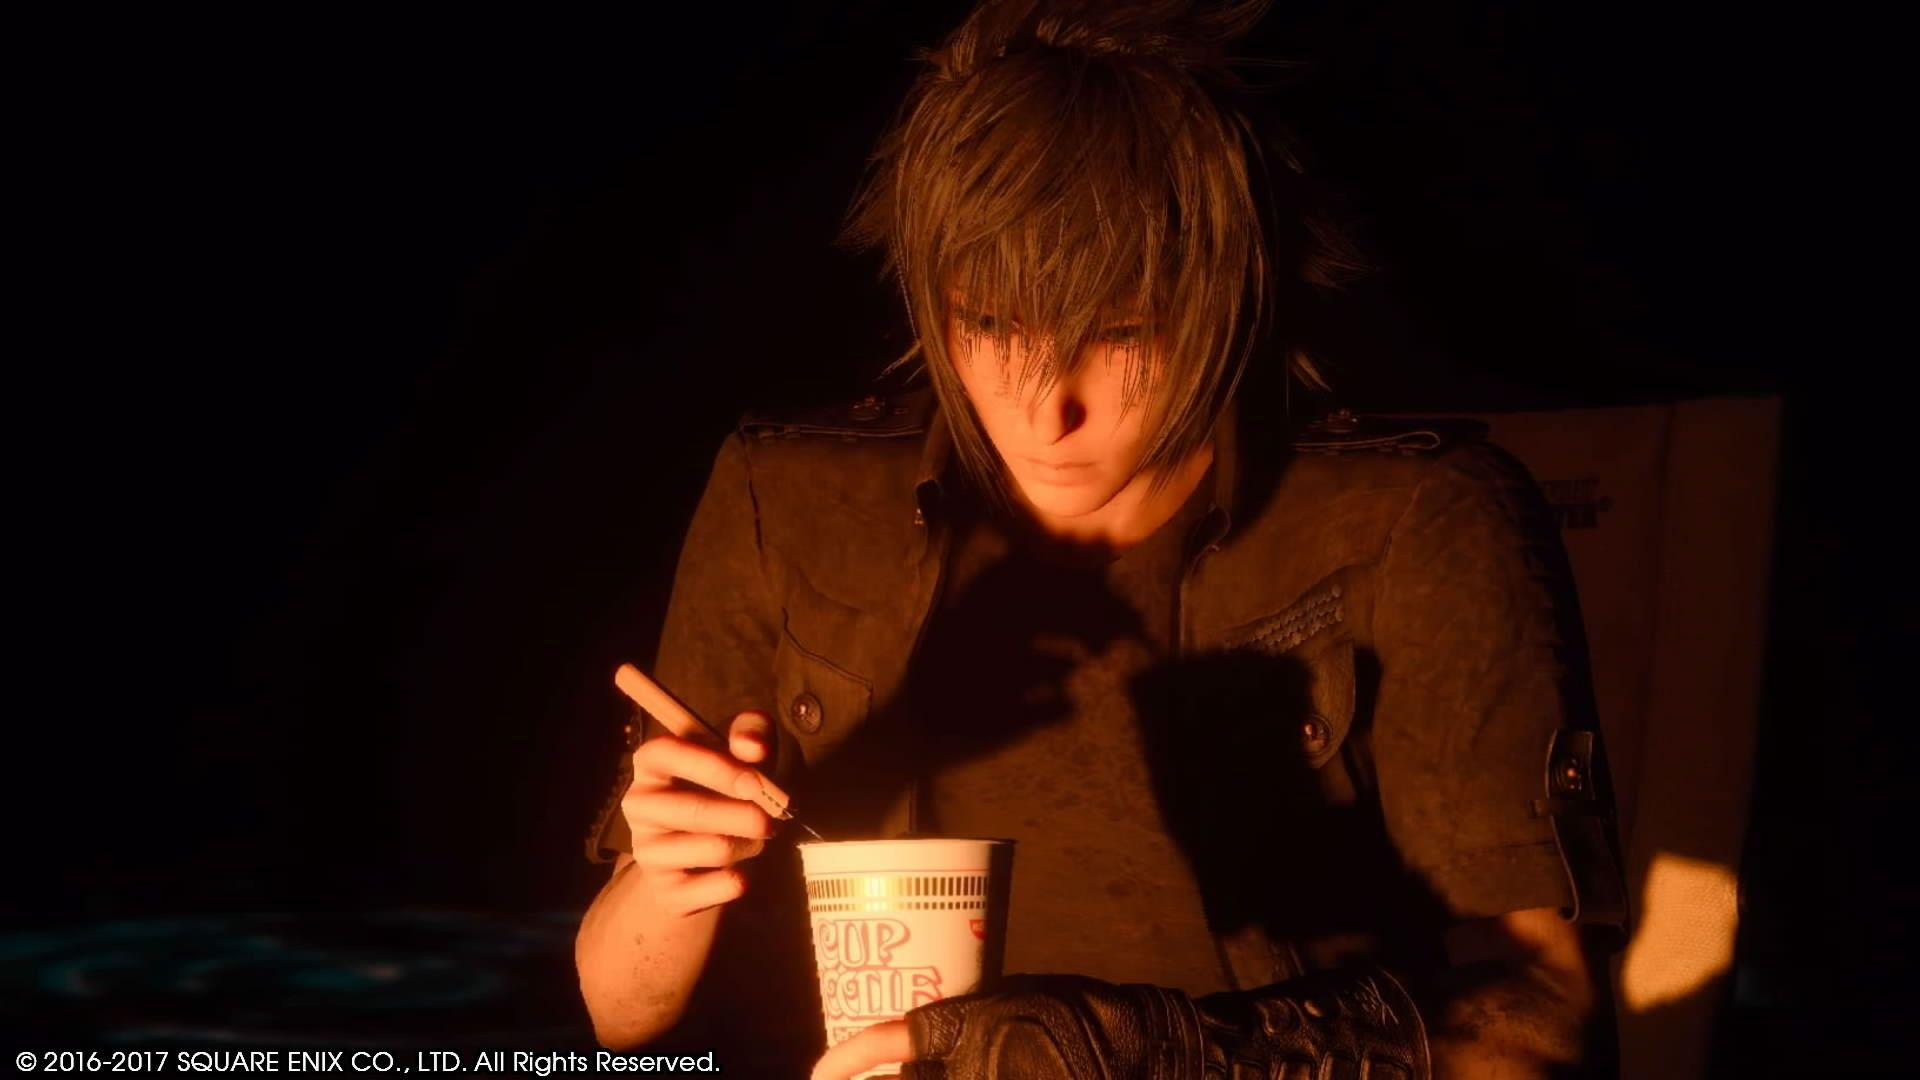 Enjoying Cup Noodles (or not... you can never tell from Noct's almost non-existent facial expressions)